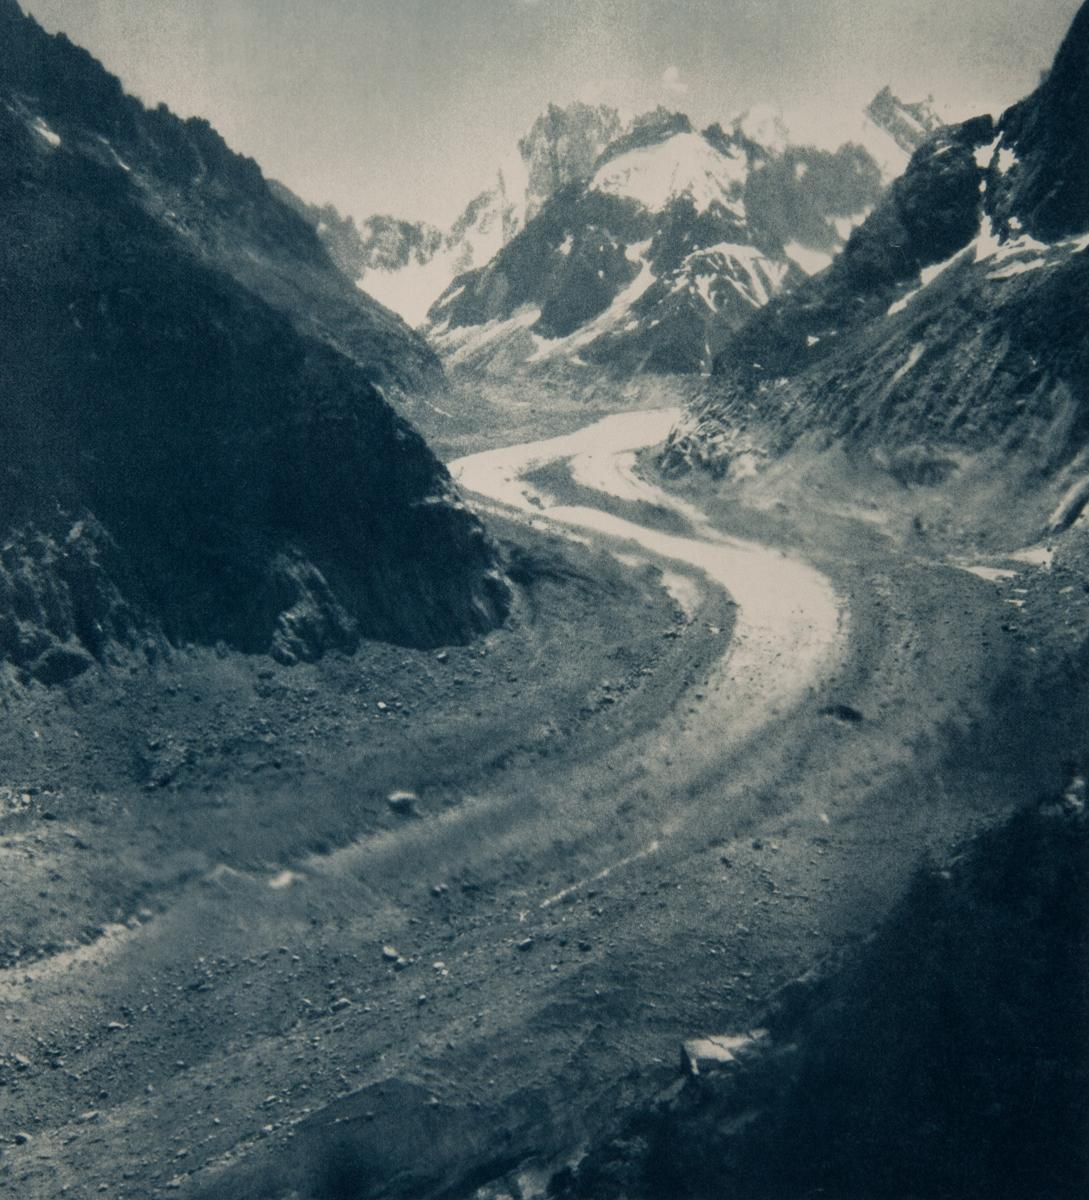 Mer de Glace June 2018 cyanotype by Emma Stibbon.jpg